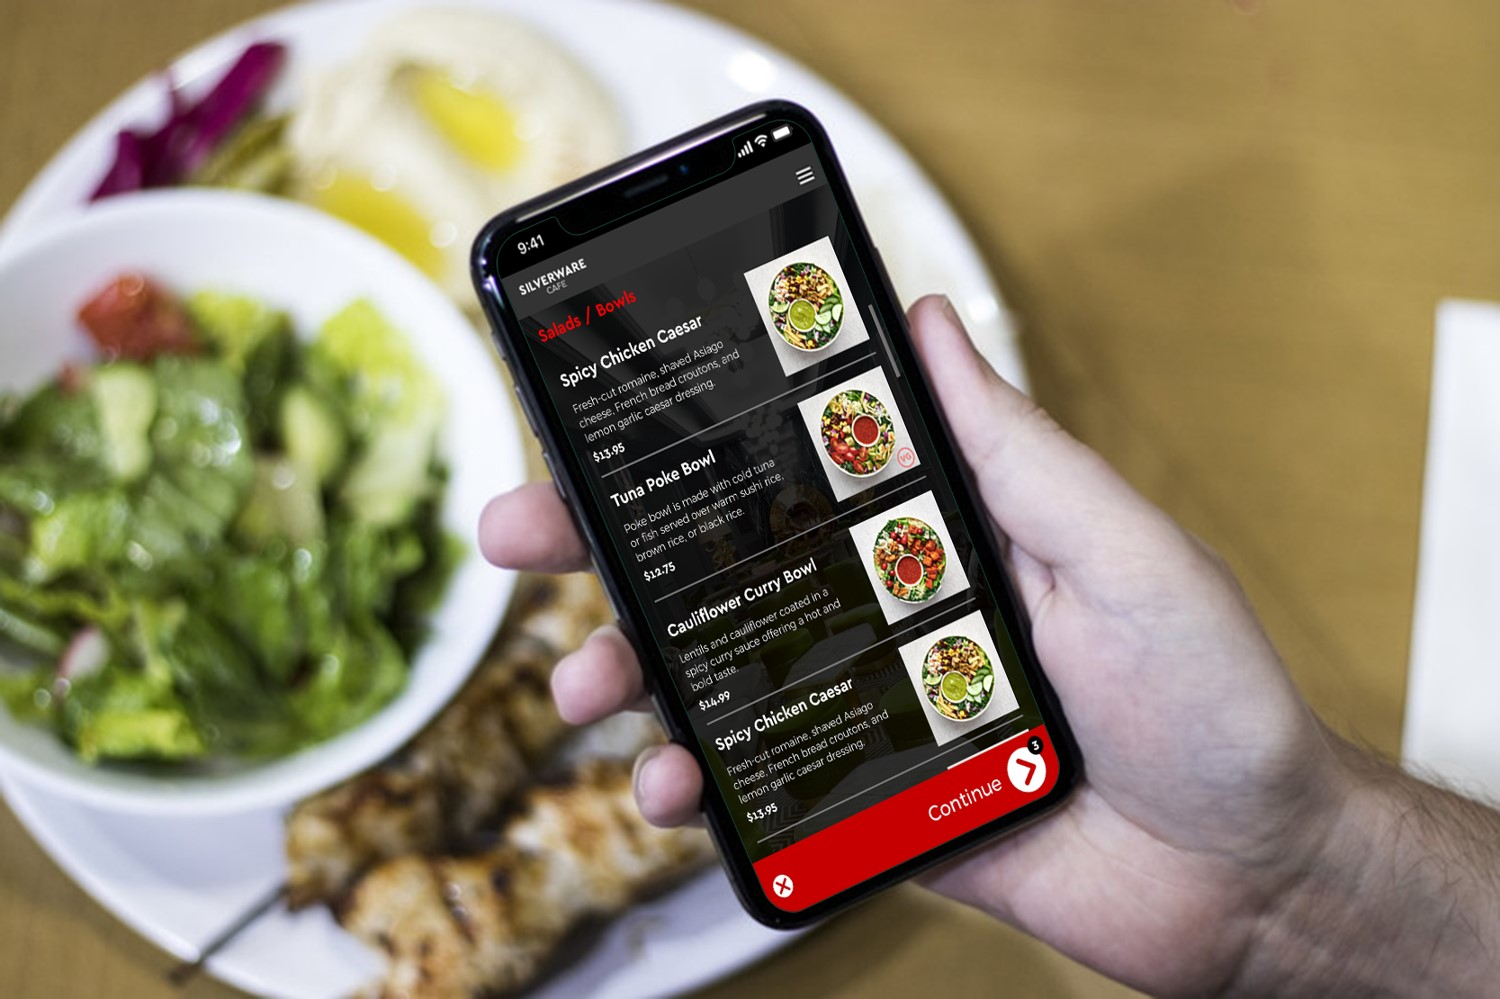 SilverWare PR Image - Maestro PMS + Silverware POS Bringing Contactless Phone-to-Table Guest Dining Experiences to Hotels and Resorts; Integration Is an Industry First - Innovative Property Management Software Solutions Powering Hotels, Resorts & Multi‑Property Groups.